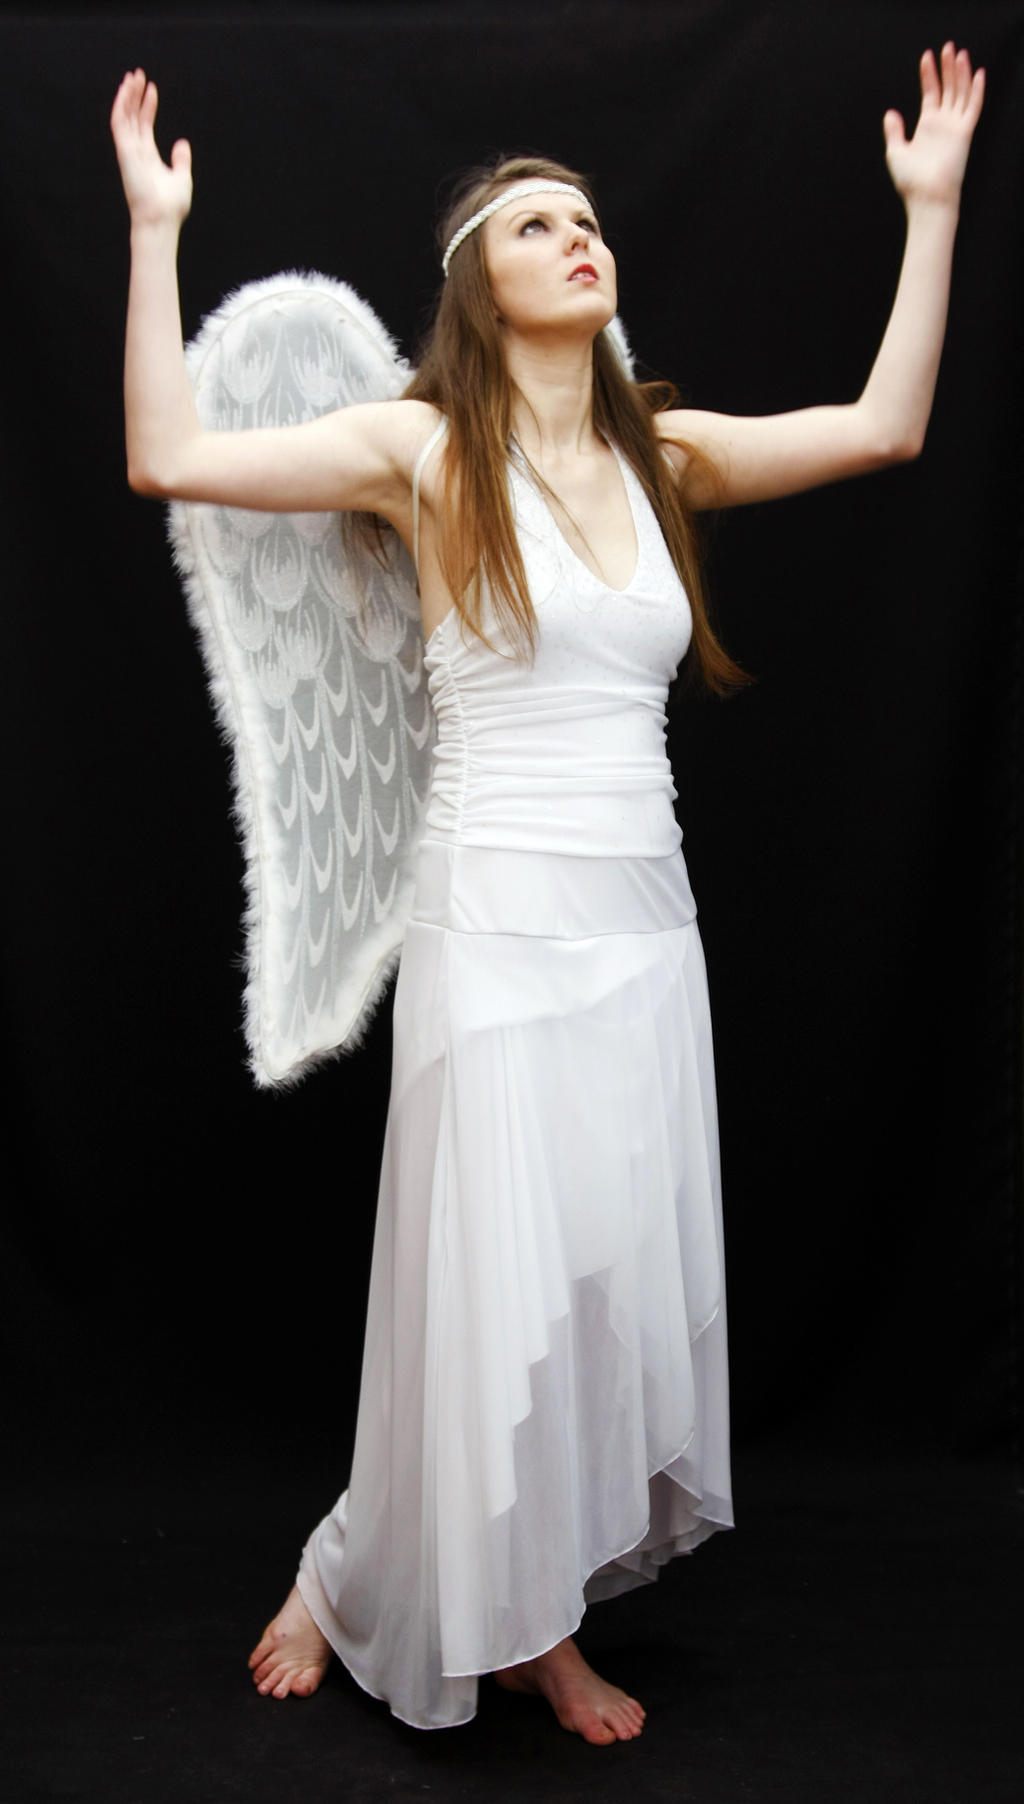 Angel 8 by CathleenTarawhiti